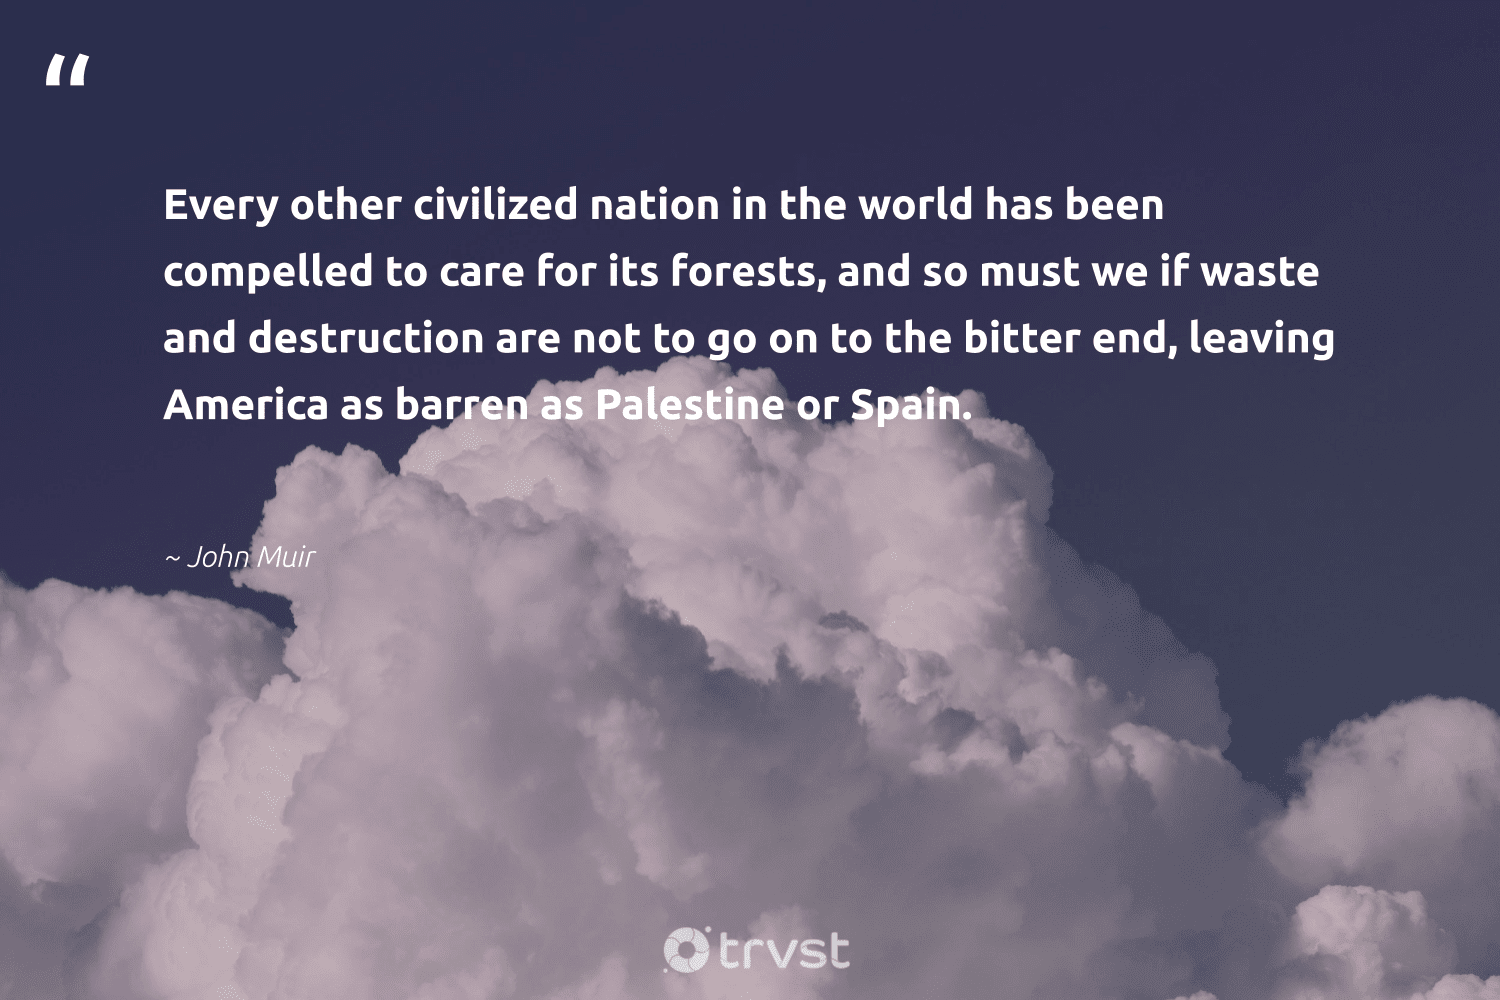 """""""Every other civilized nation in the world has been compelled to care for its forests, and so must we if waste and destruction are not to go on to the bitter end, leaving America as barren as Palestine or Spain.""""  - John Muir #trvst #quotes #waste #natureseekers #collectiveaction #naturelovers #dogood #sustainable #planetearthfirst #ecofriendly #ecoconscious #sustainability"""